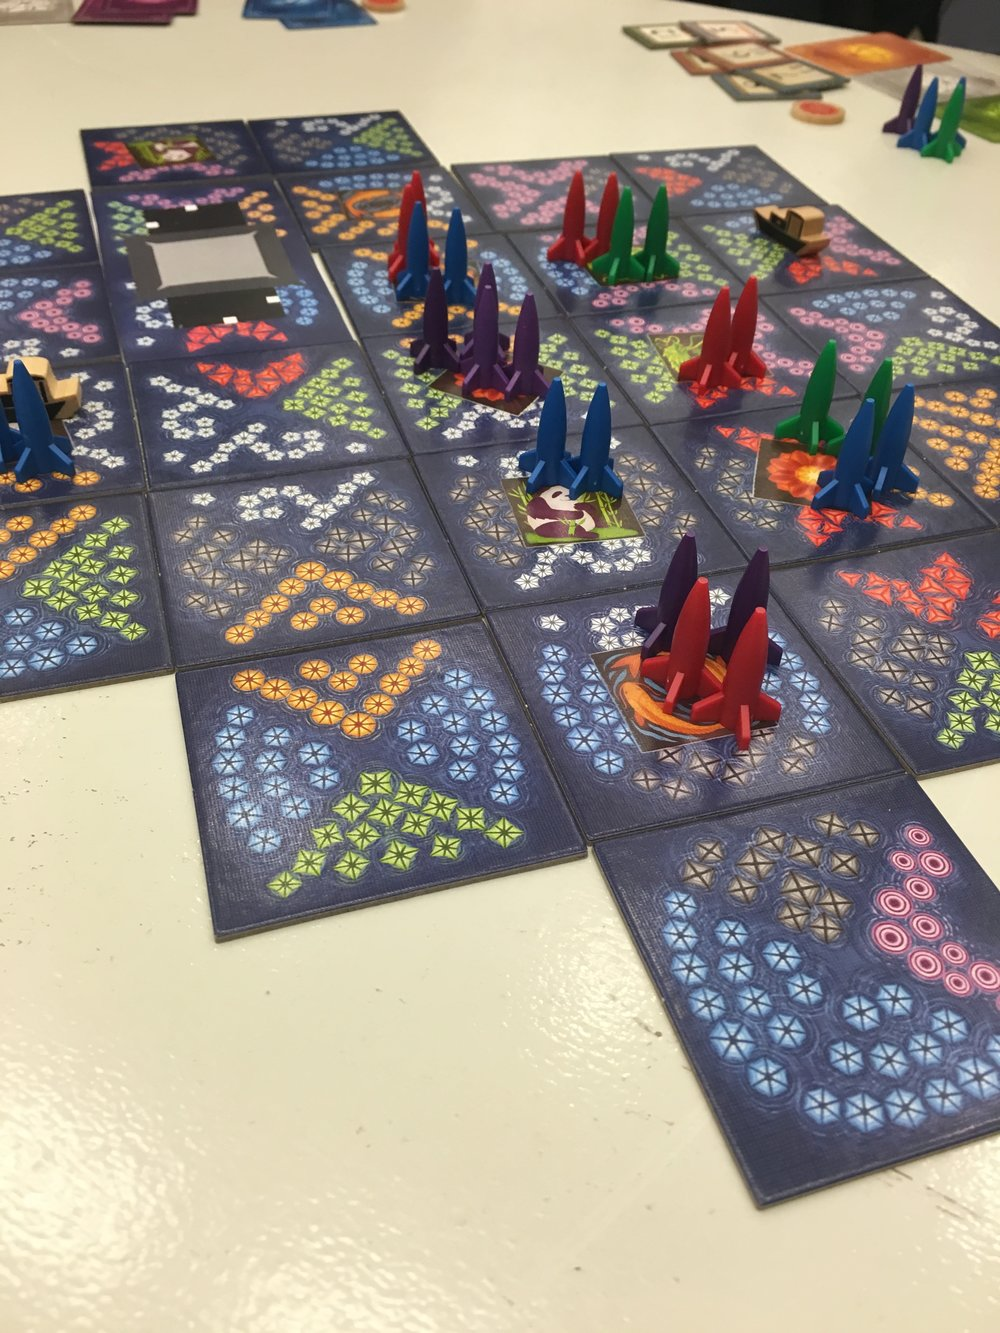 Randy was at Unpub too and testing the expansion for Lanterns.